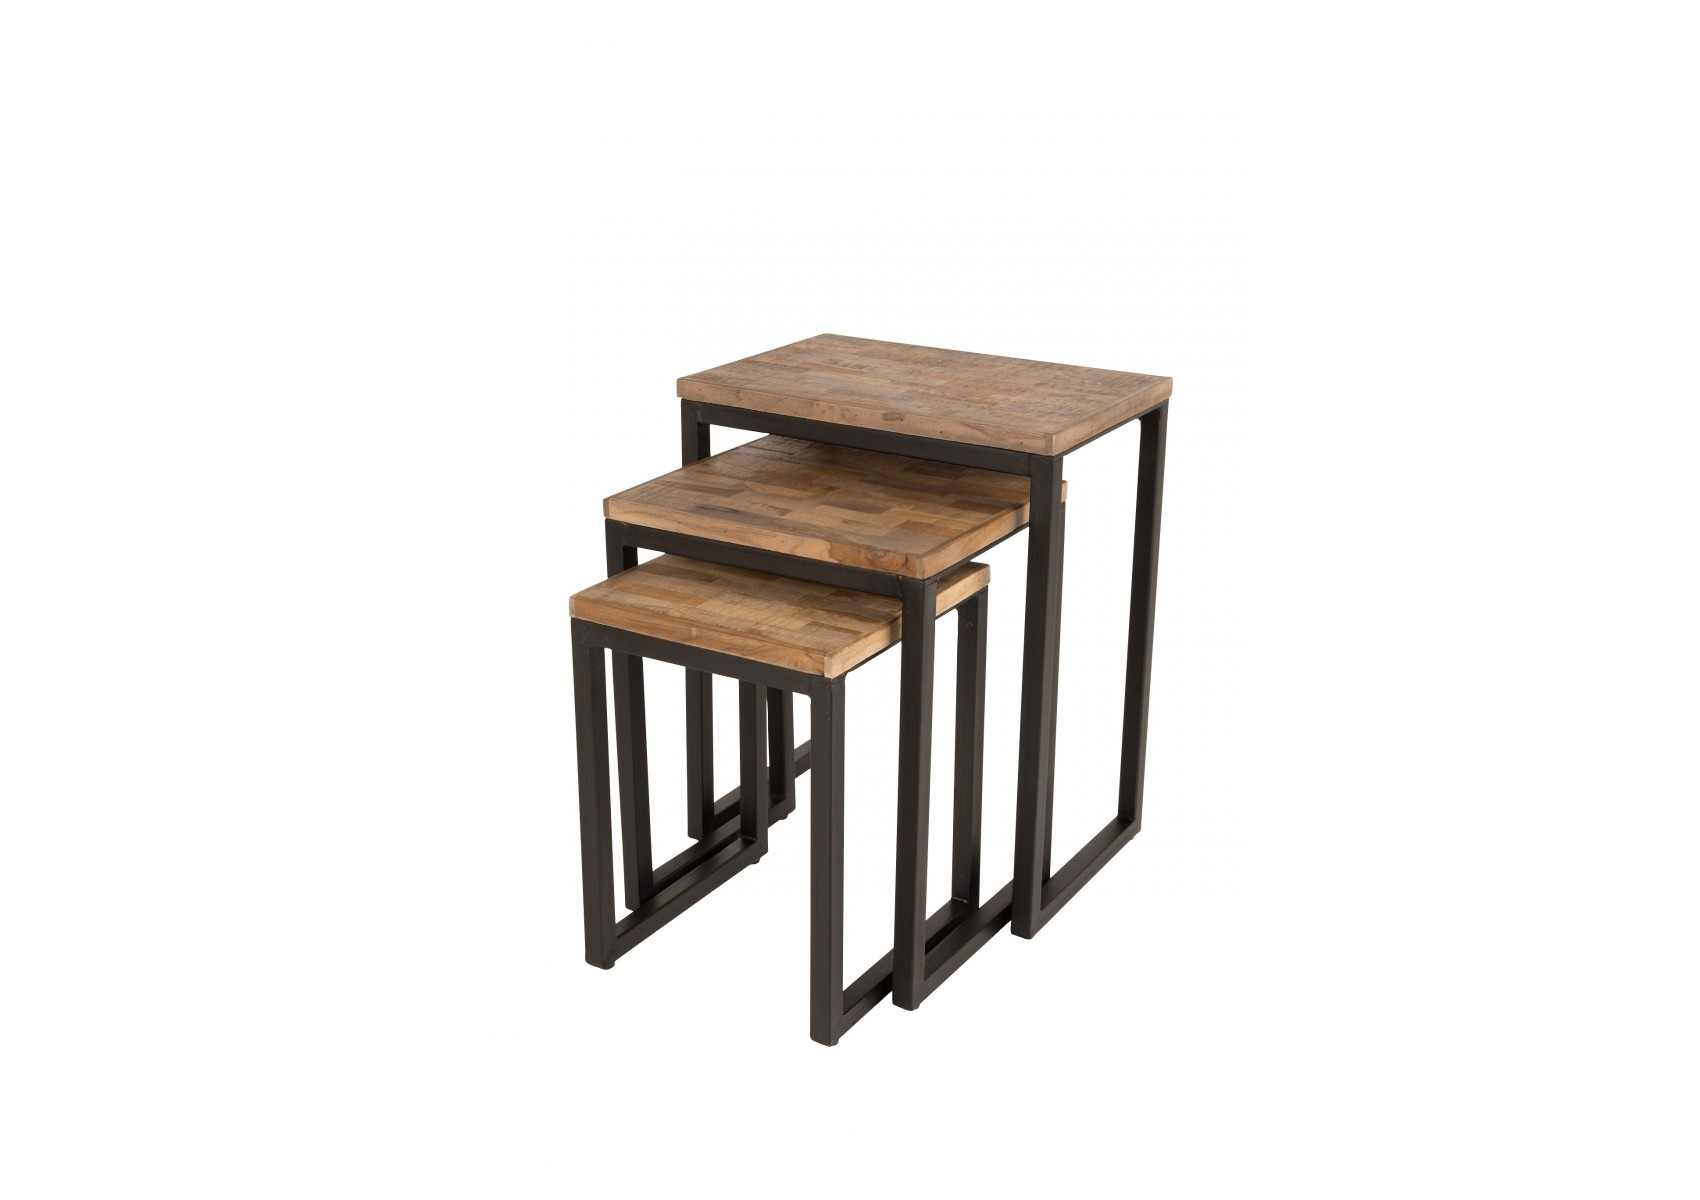 162 modele set de table tischset blatt maisons du monde set de table mod le et exemple menu - Set de table maison du monde ...